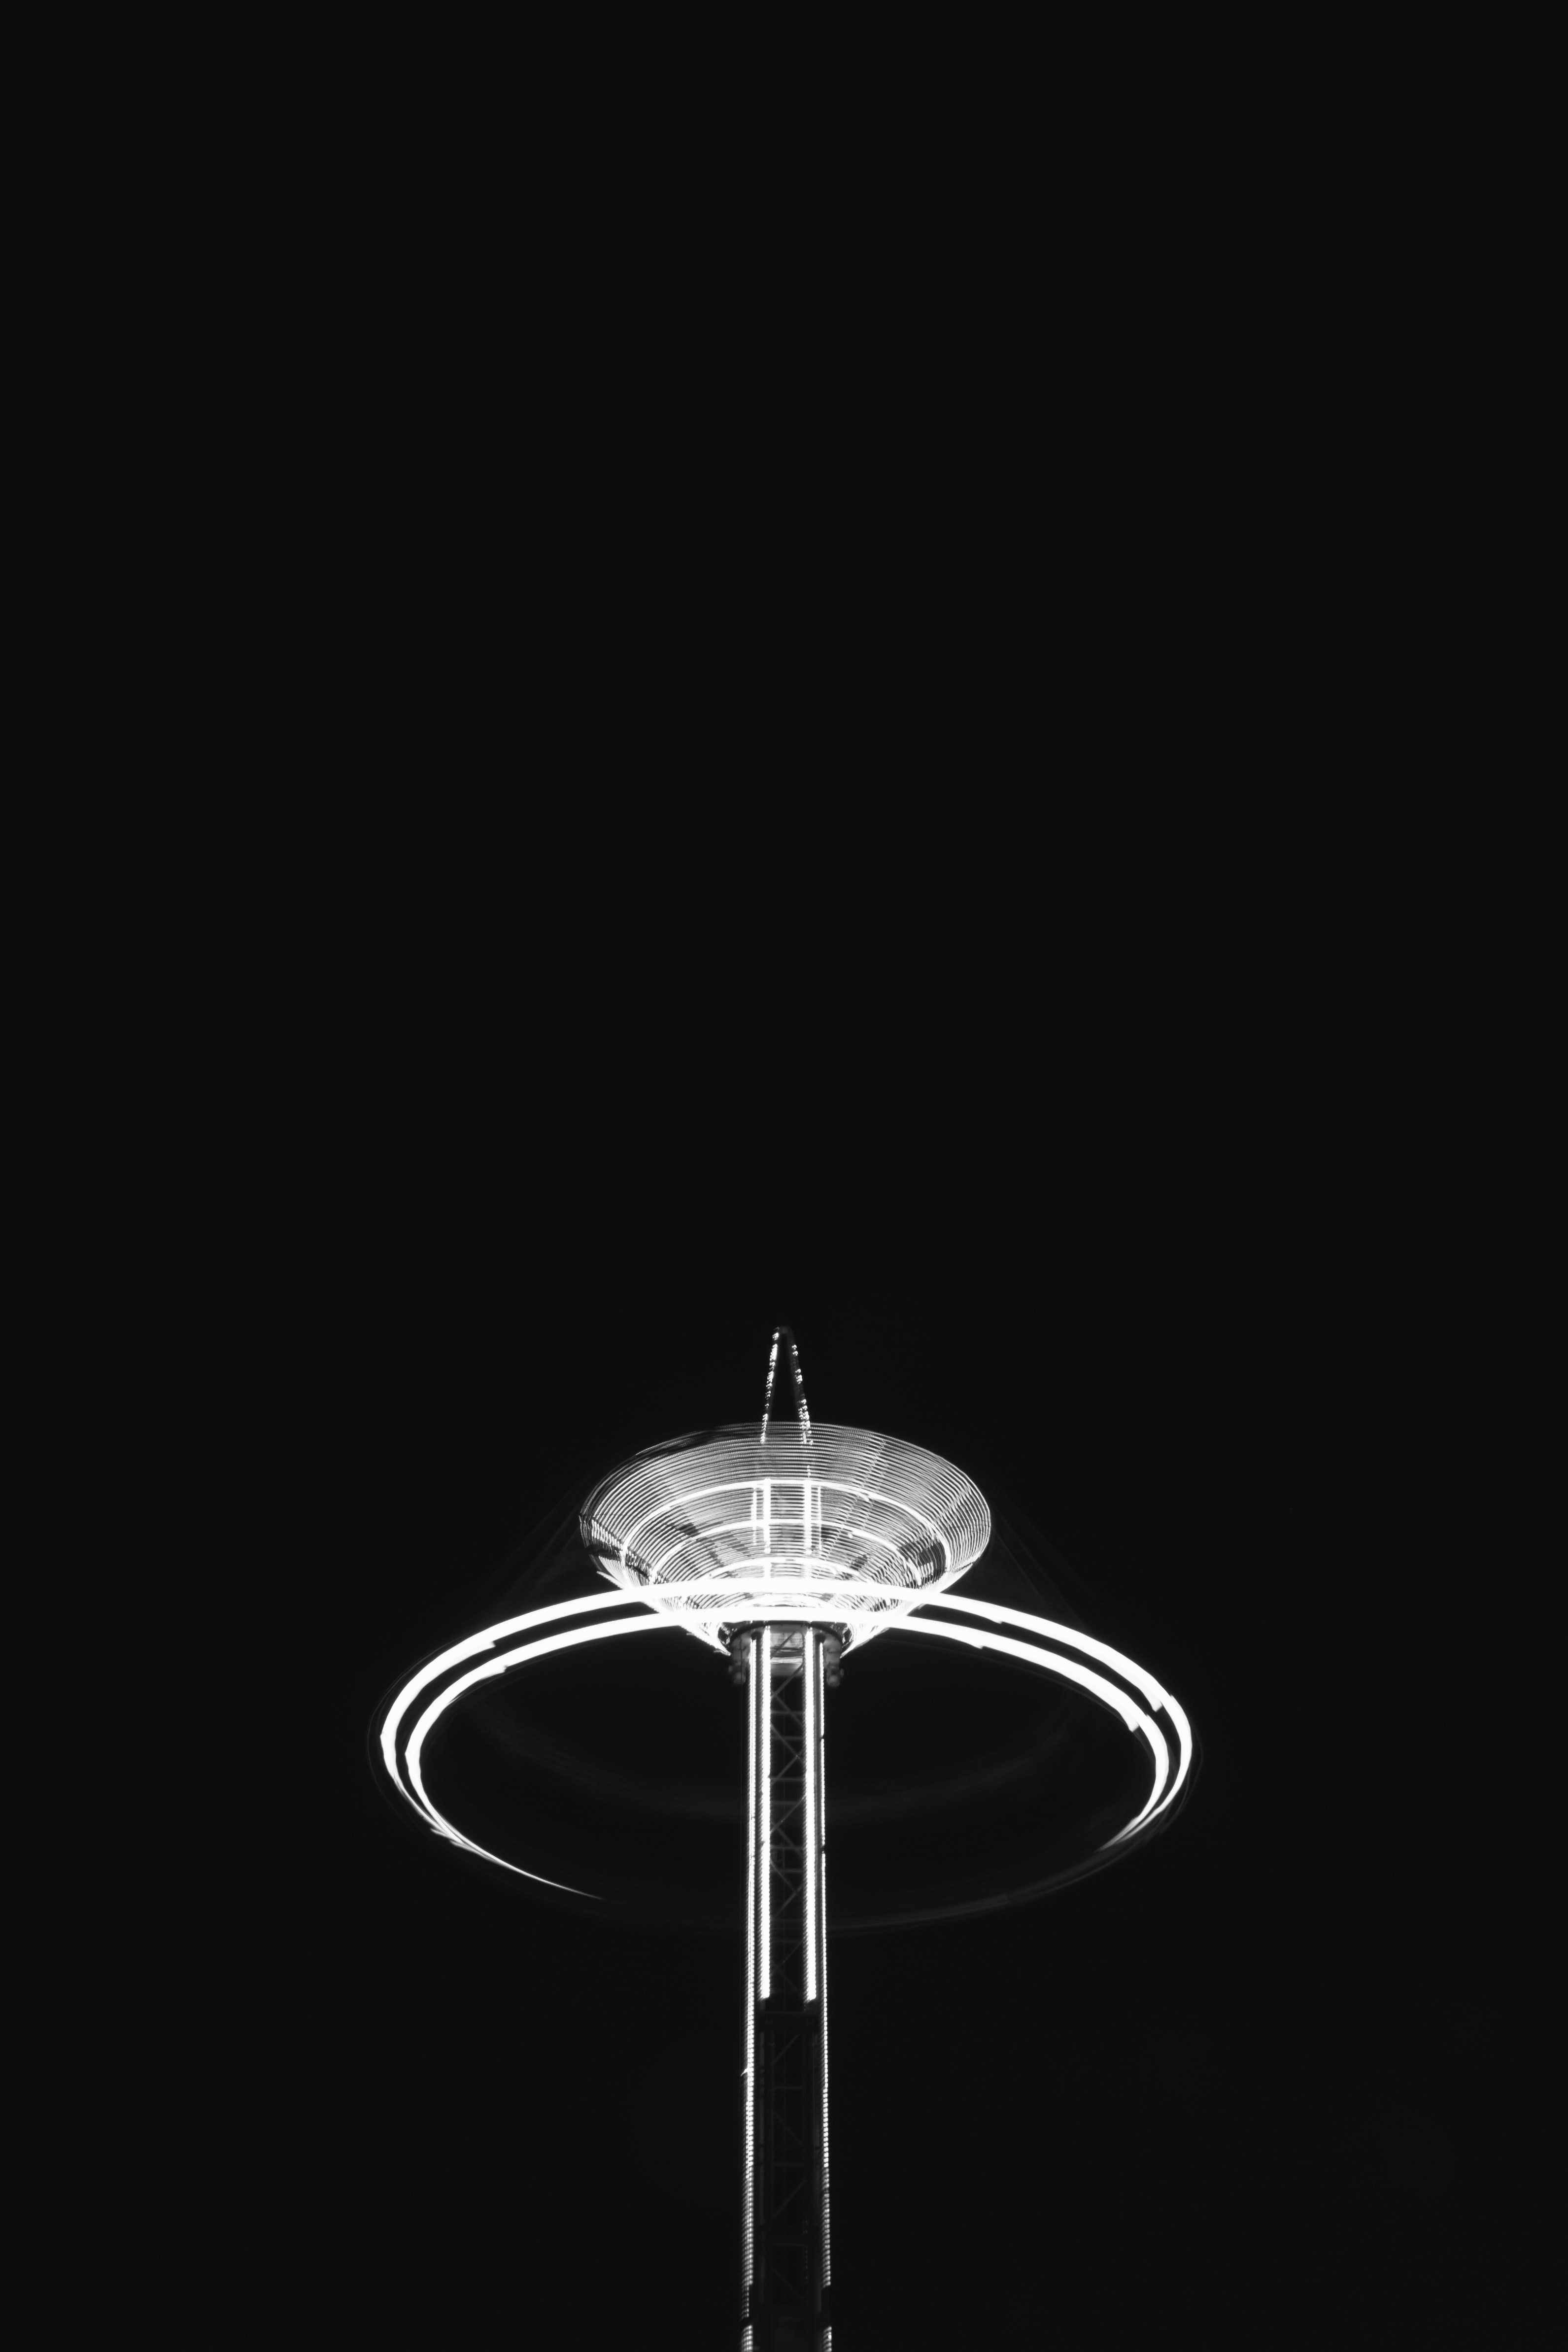 A black ground with an illuminated fairground ride, lit up with a surrounding light trail circle